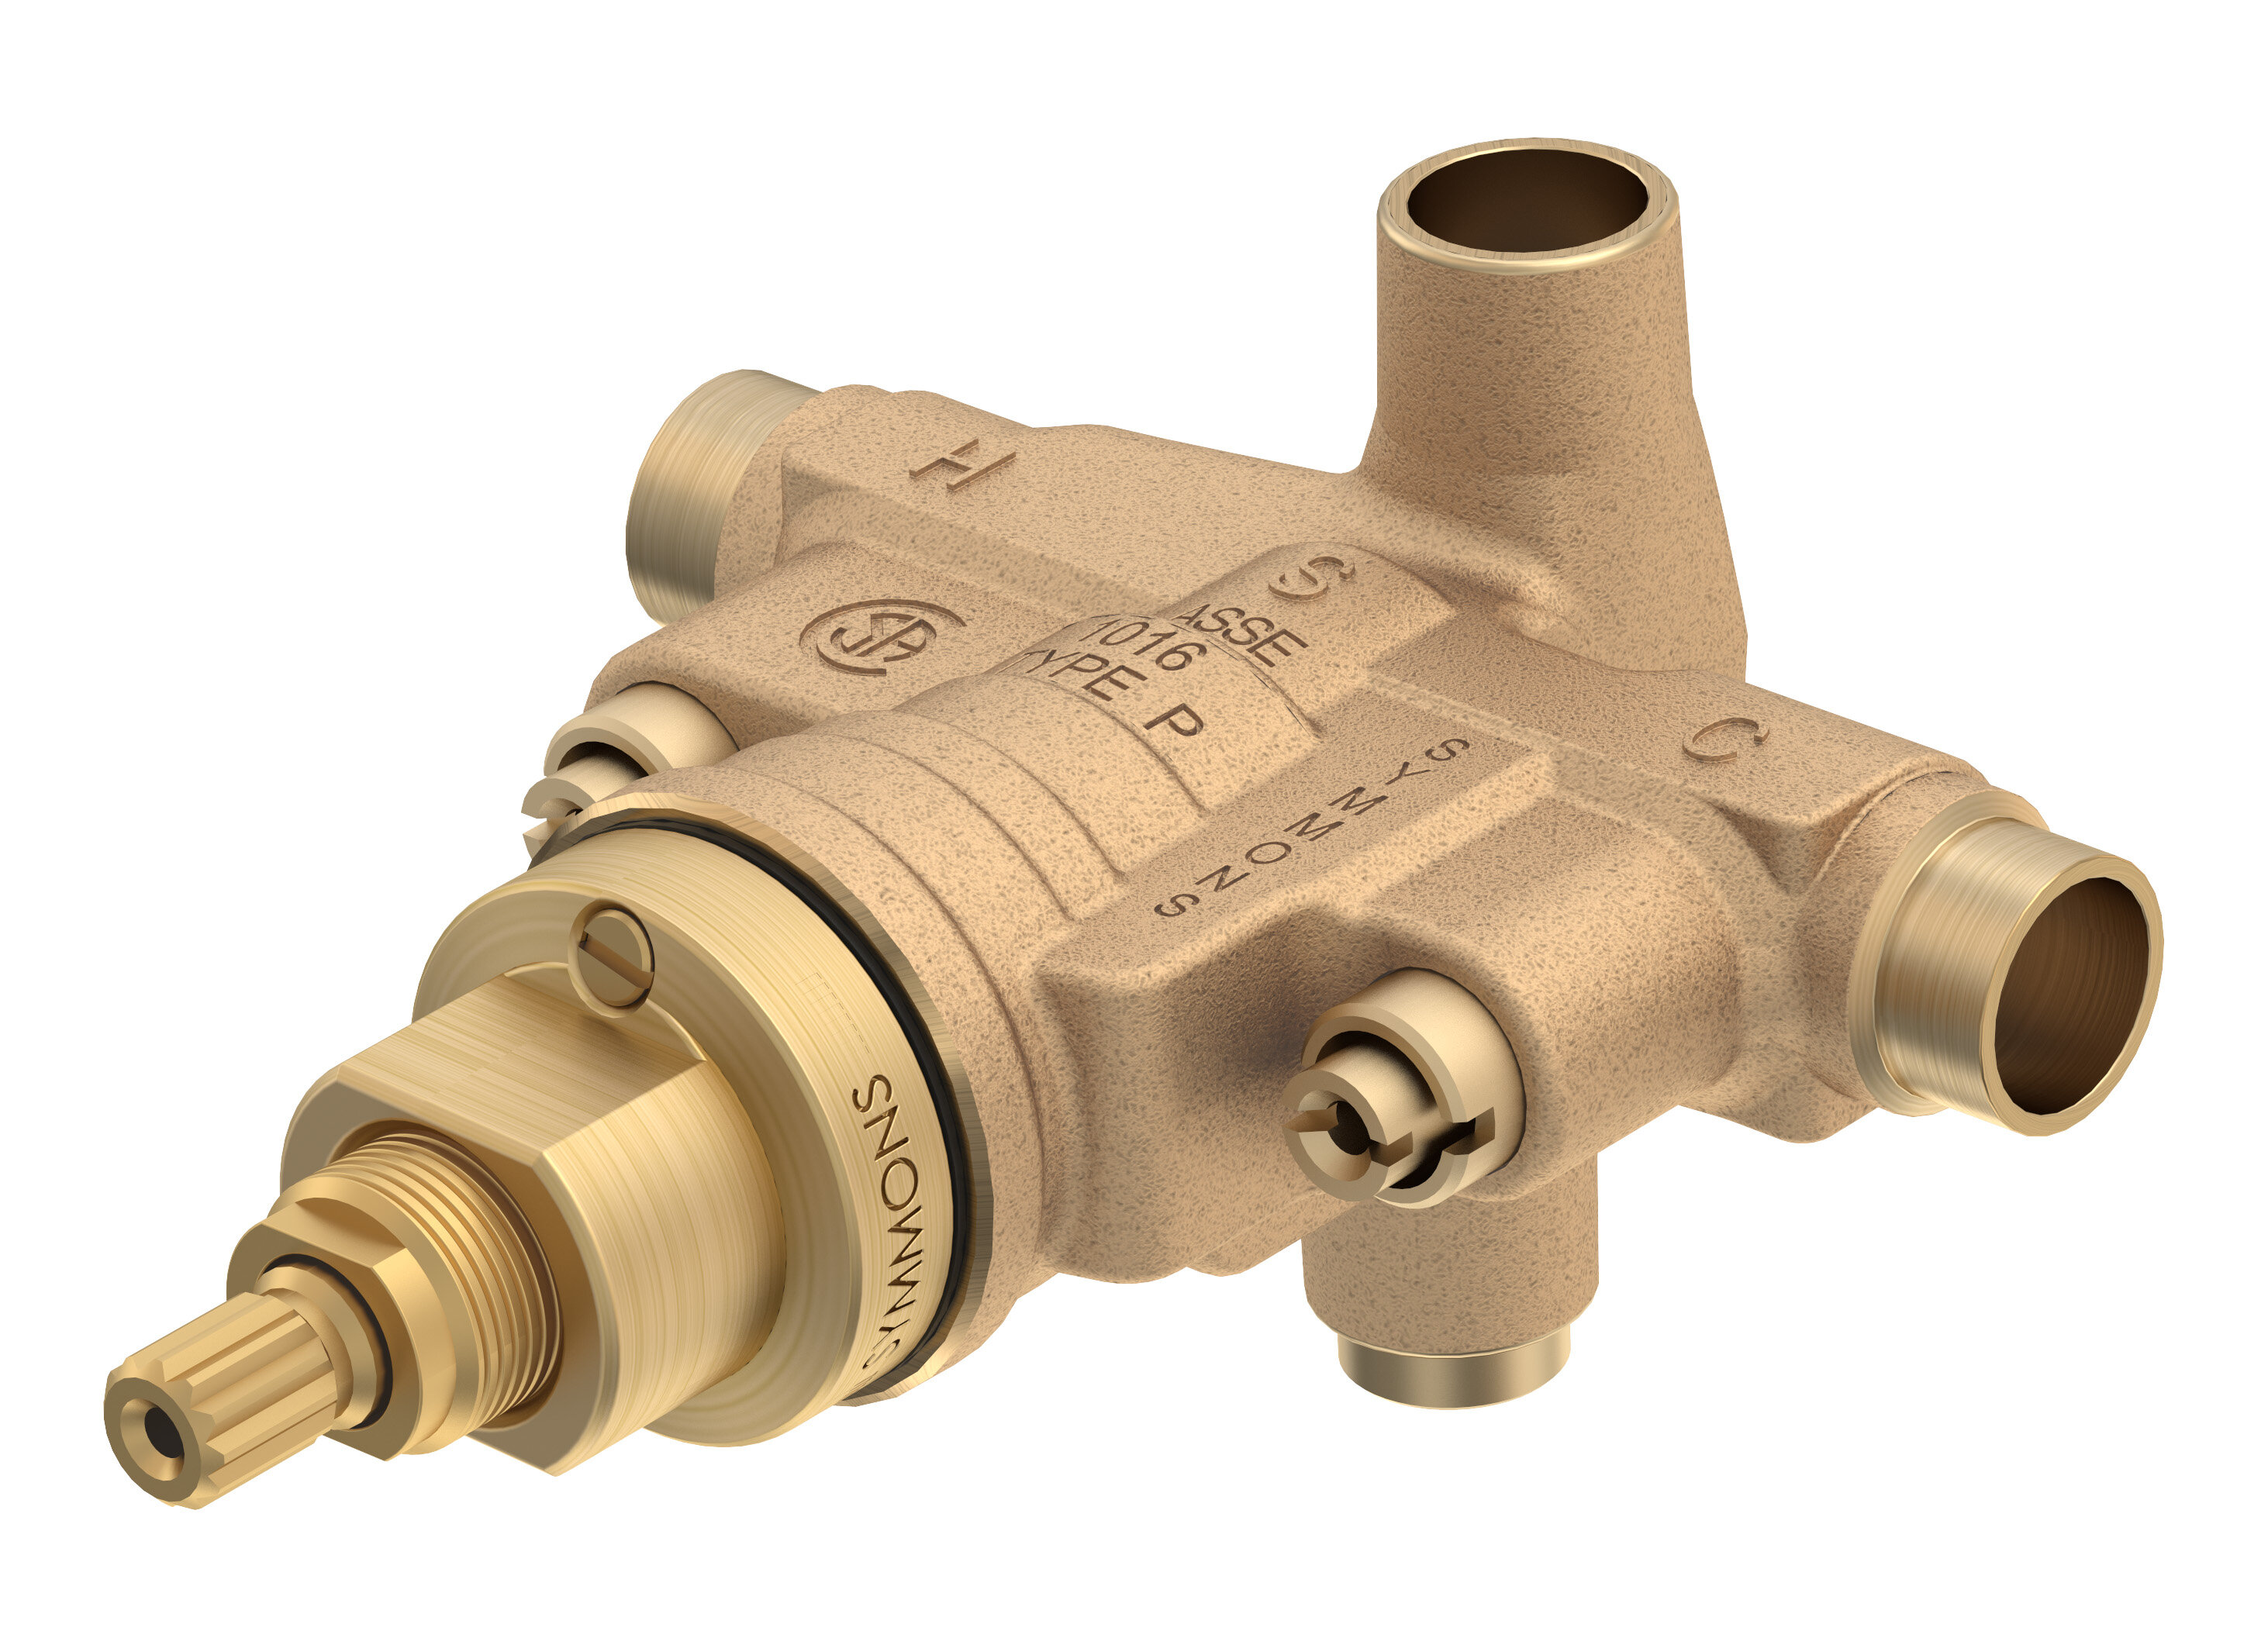 Symmons Temptrol Pressure Balancing Tub/Shower Valve Body with Stops ...